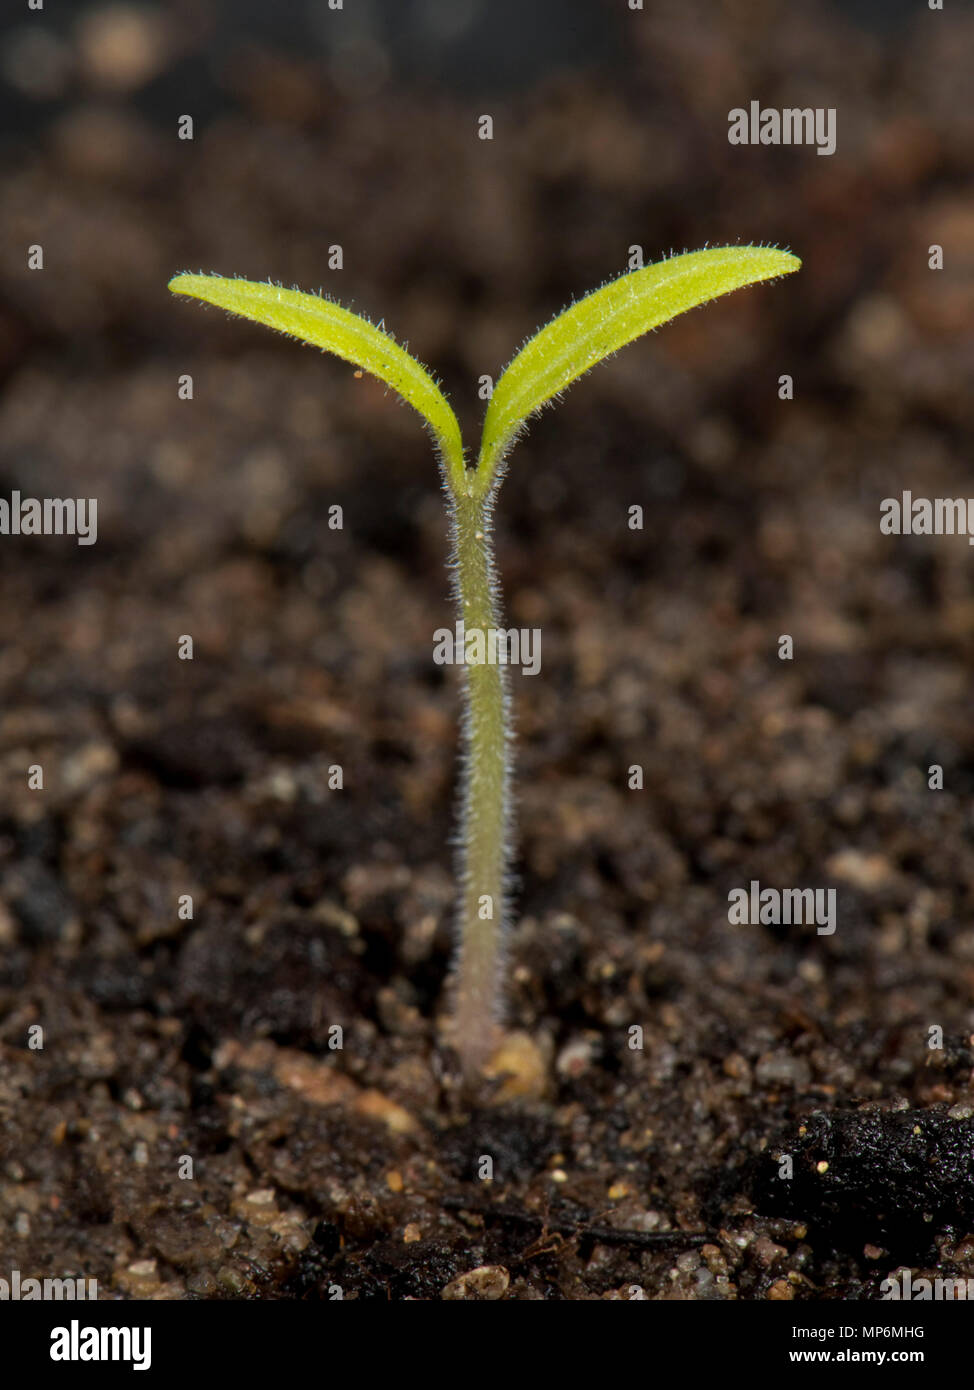 Gardeners delight, cherry tomato seedling just germinated with cotyledons above the soil - Stock Image